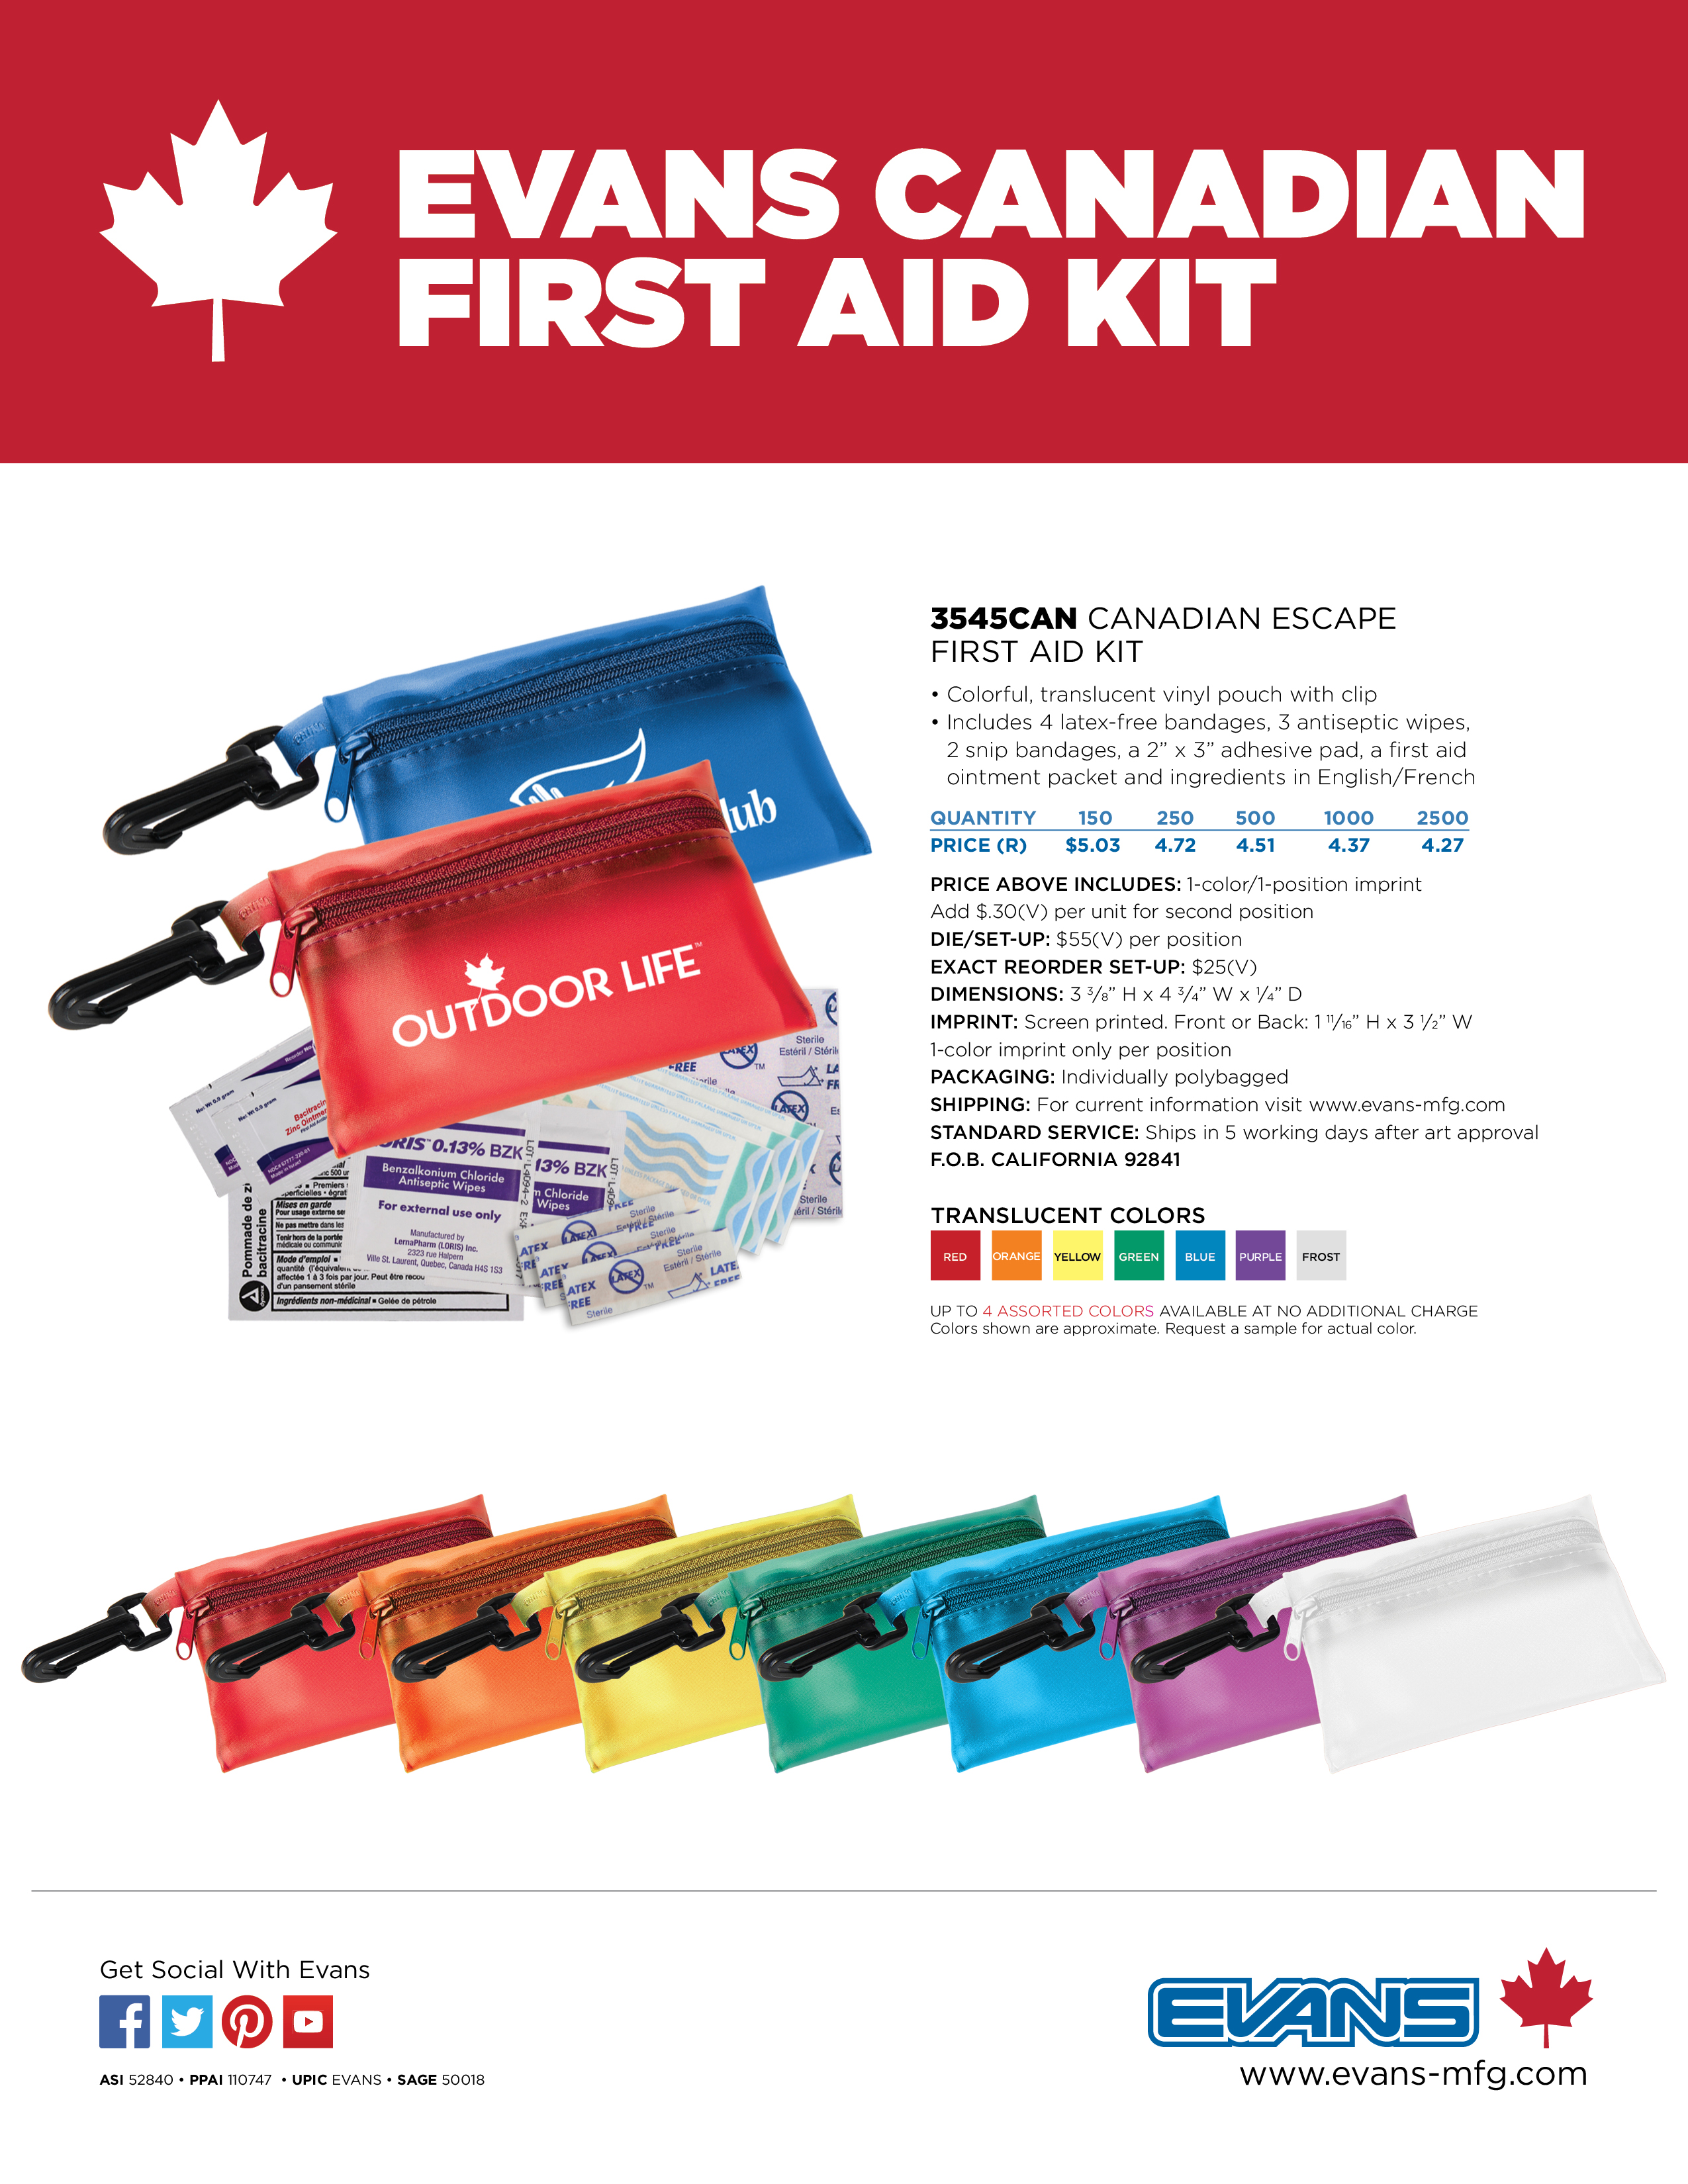 3545CAN Canadian Escape First Aid Kit